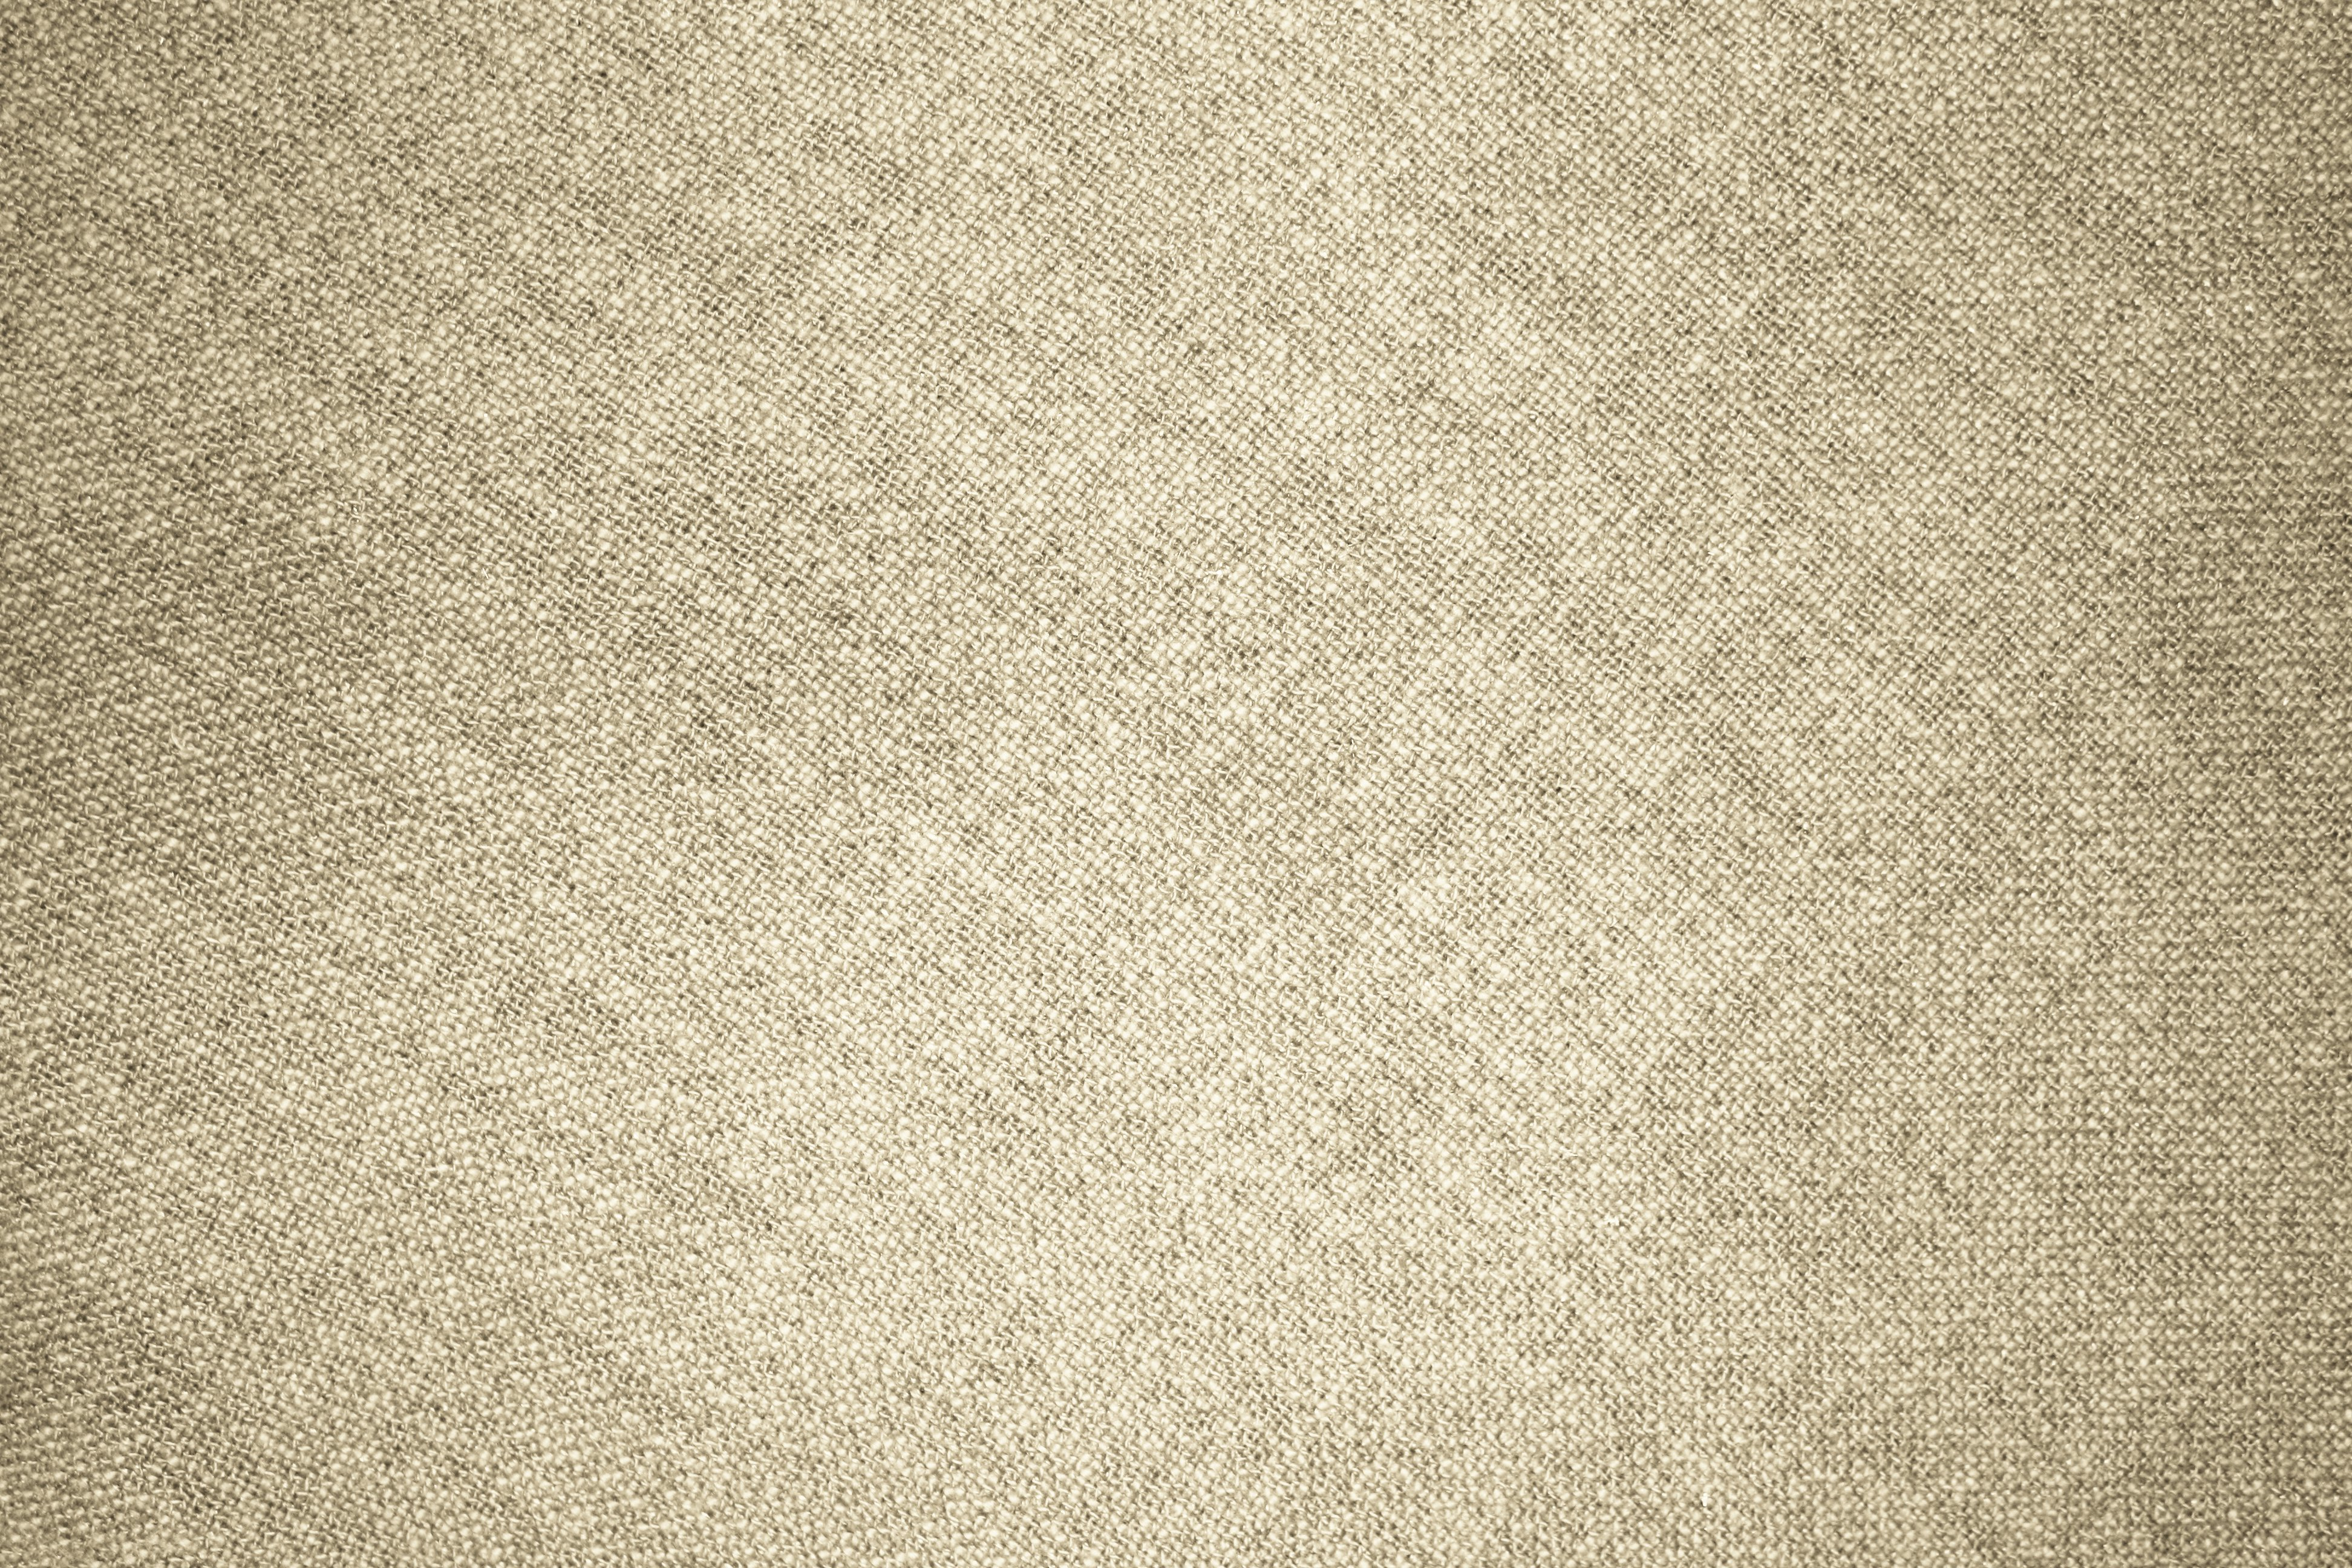 Beige Fabric Texture Picture Free Photograph Photos